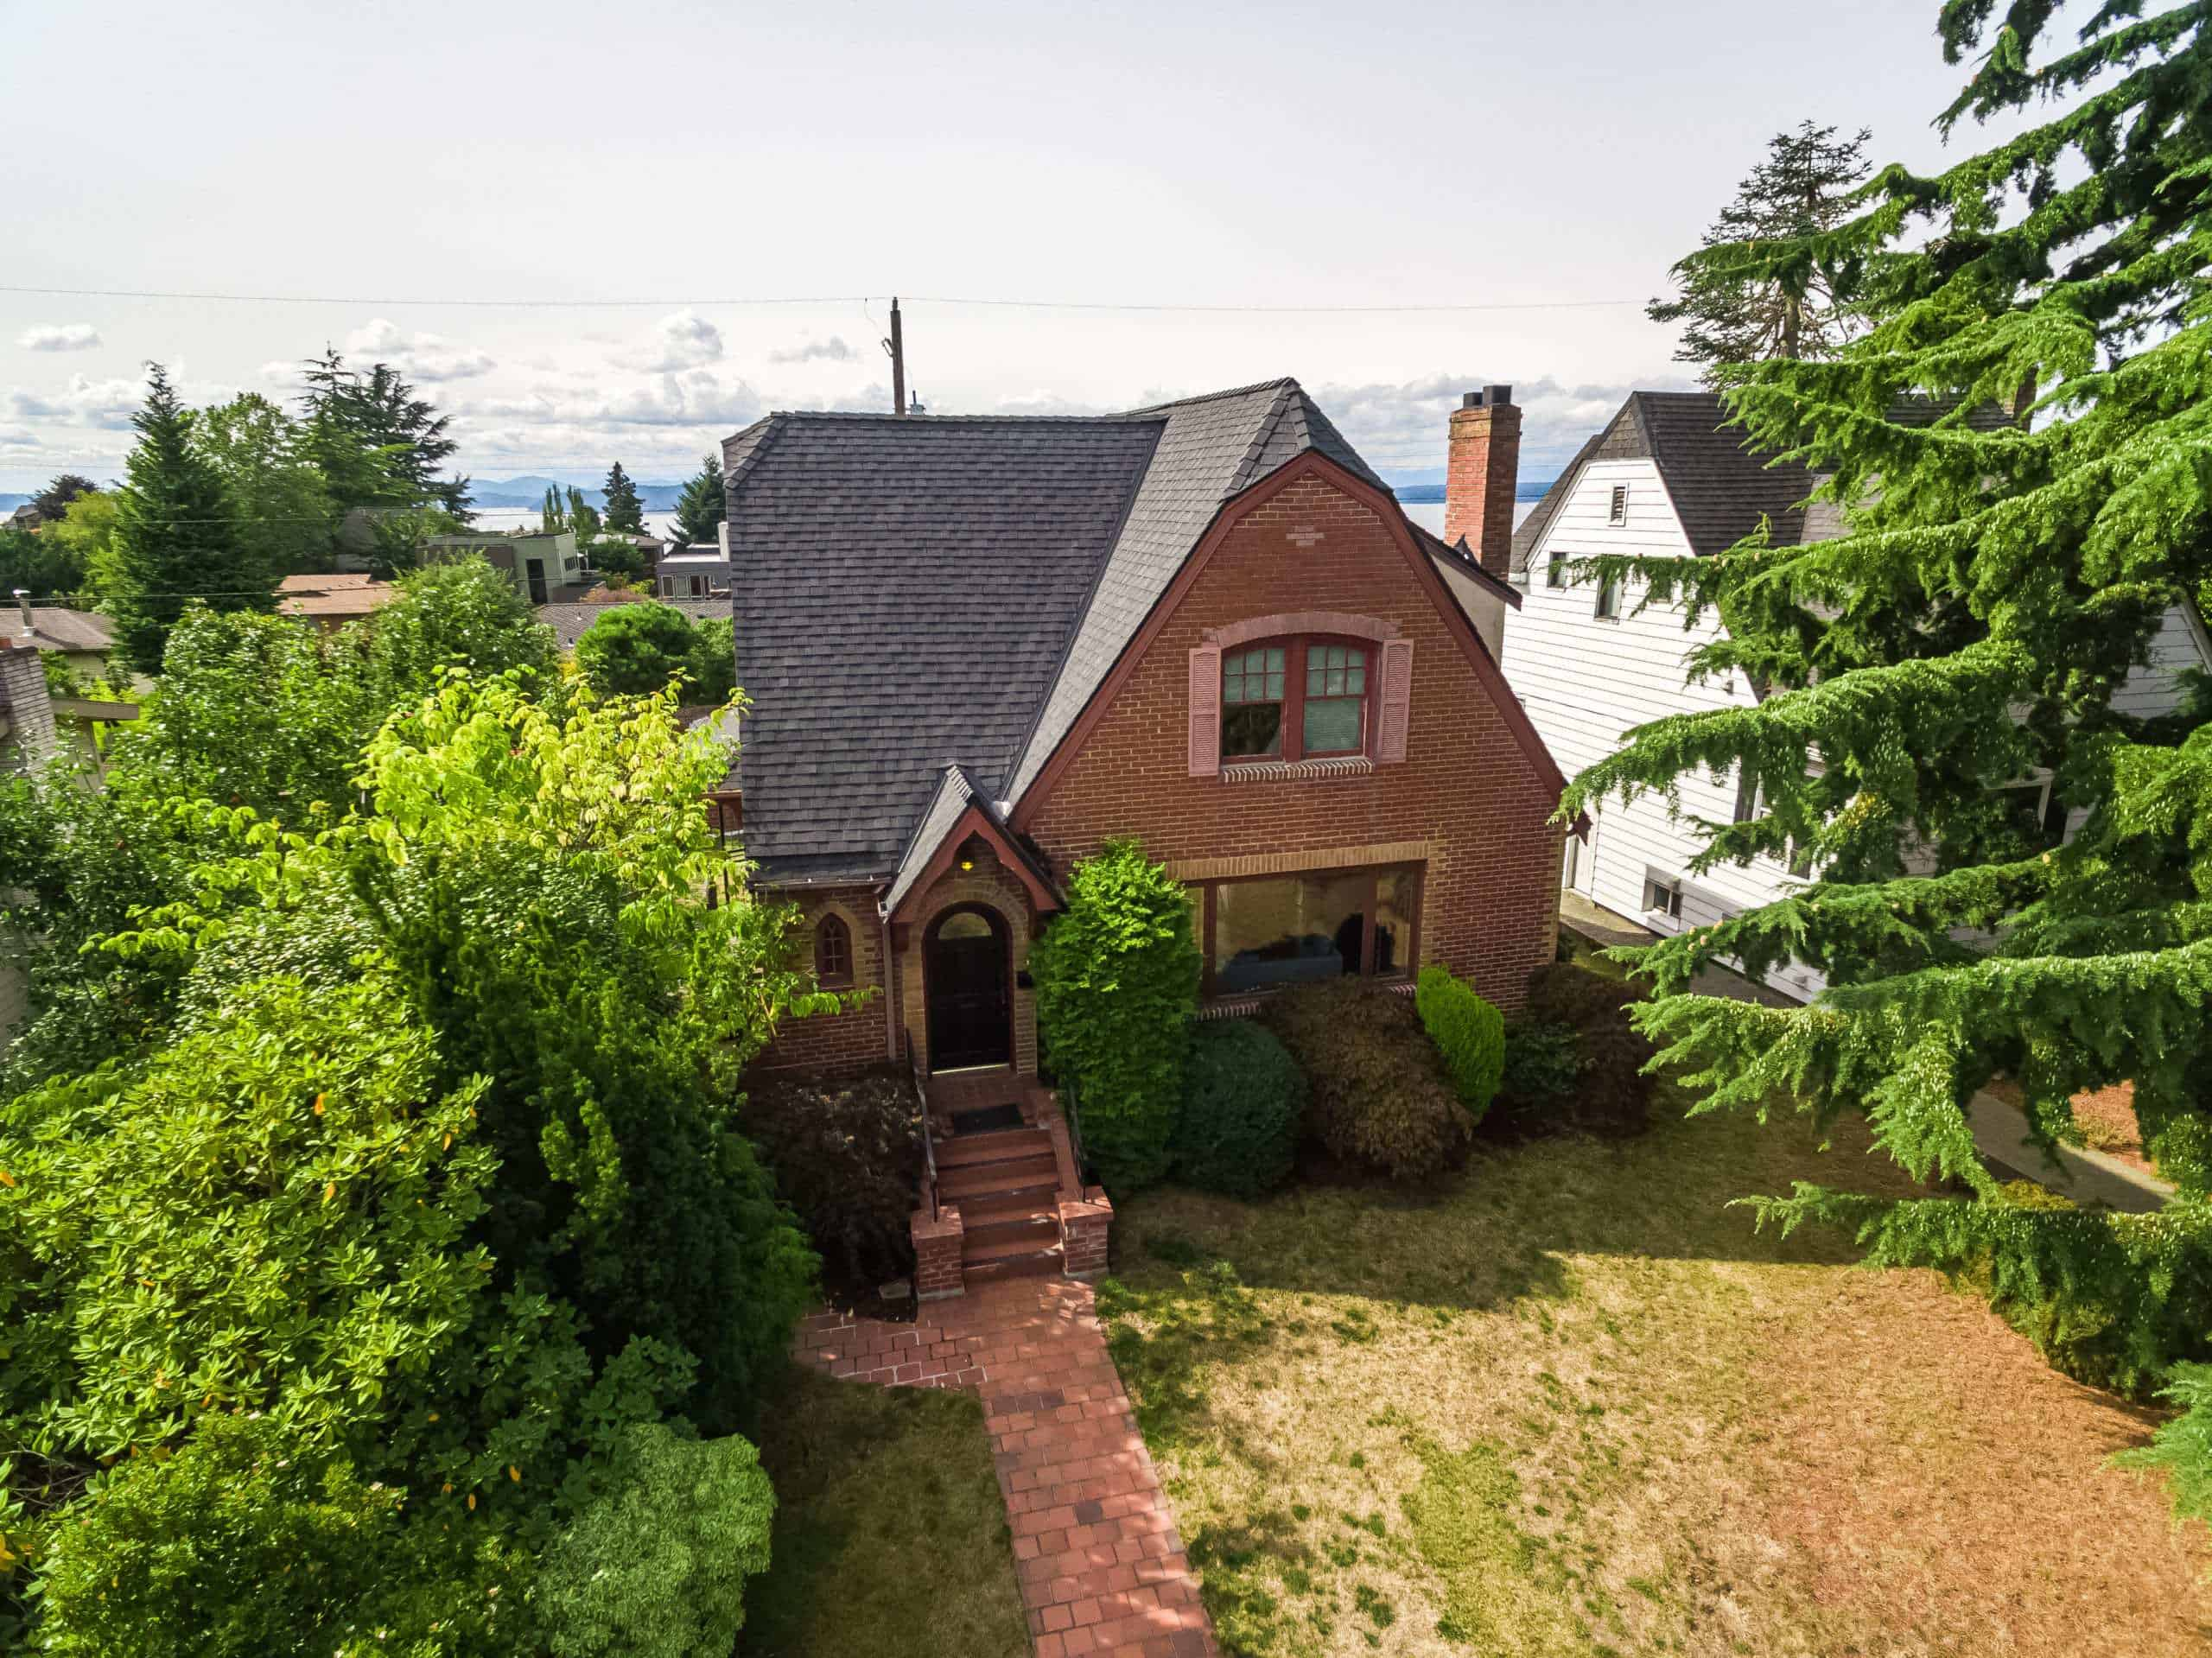 Seattle Home with Newly Replaced Composite Roof